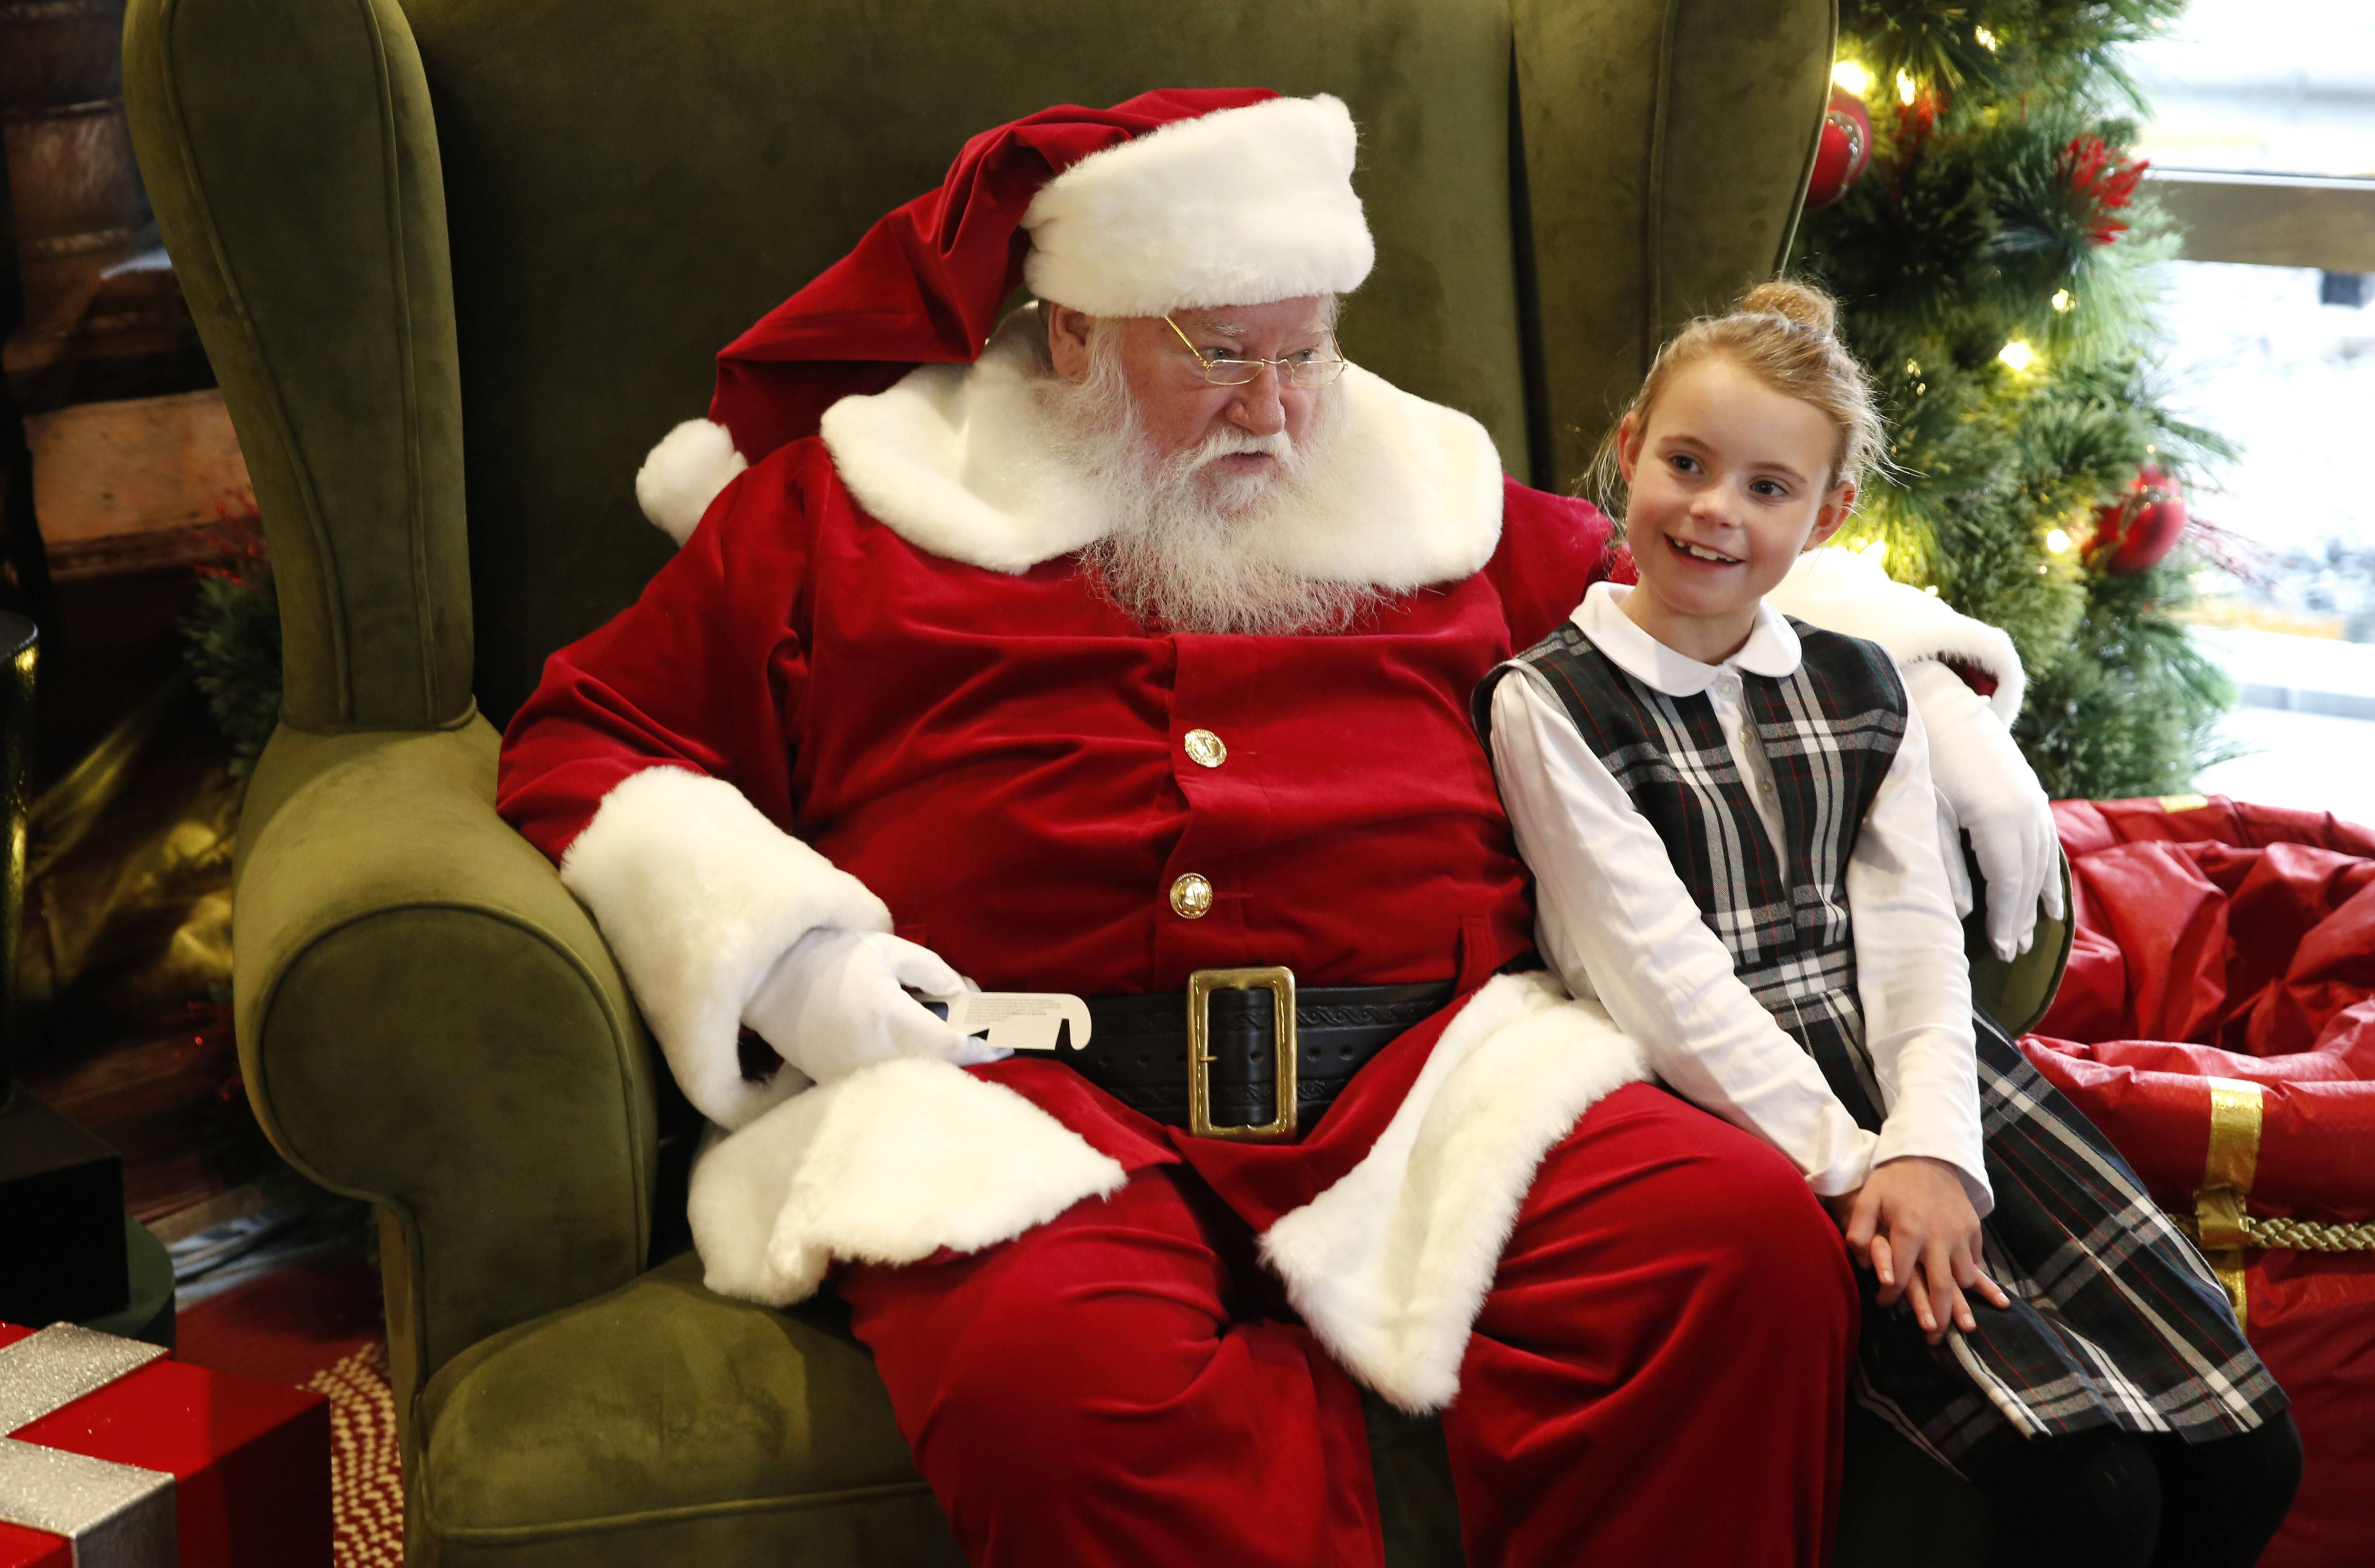 Katelyn O'Toole, a 9-year-old from LaGrange, meets with Santa at Oakbrook Center.